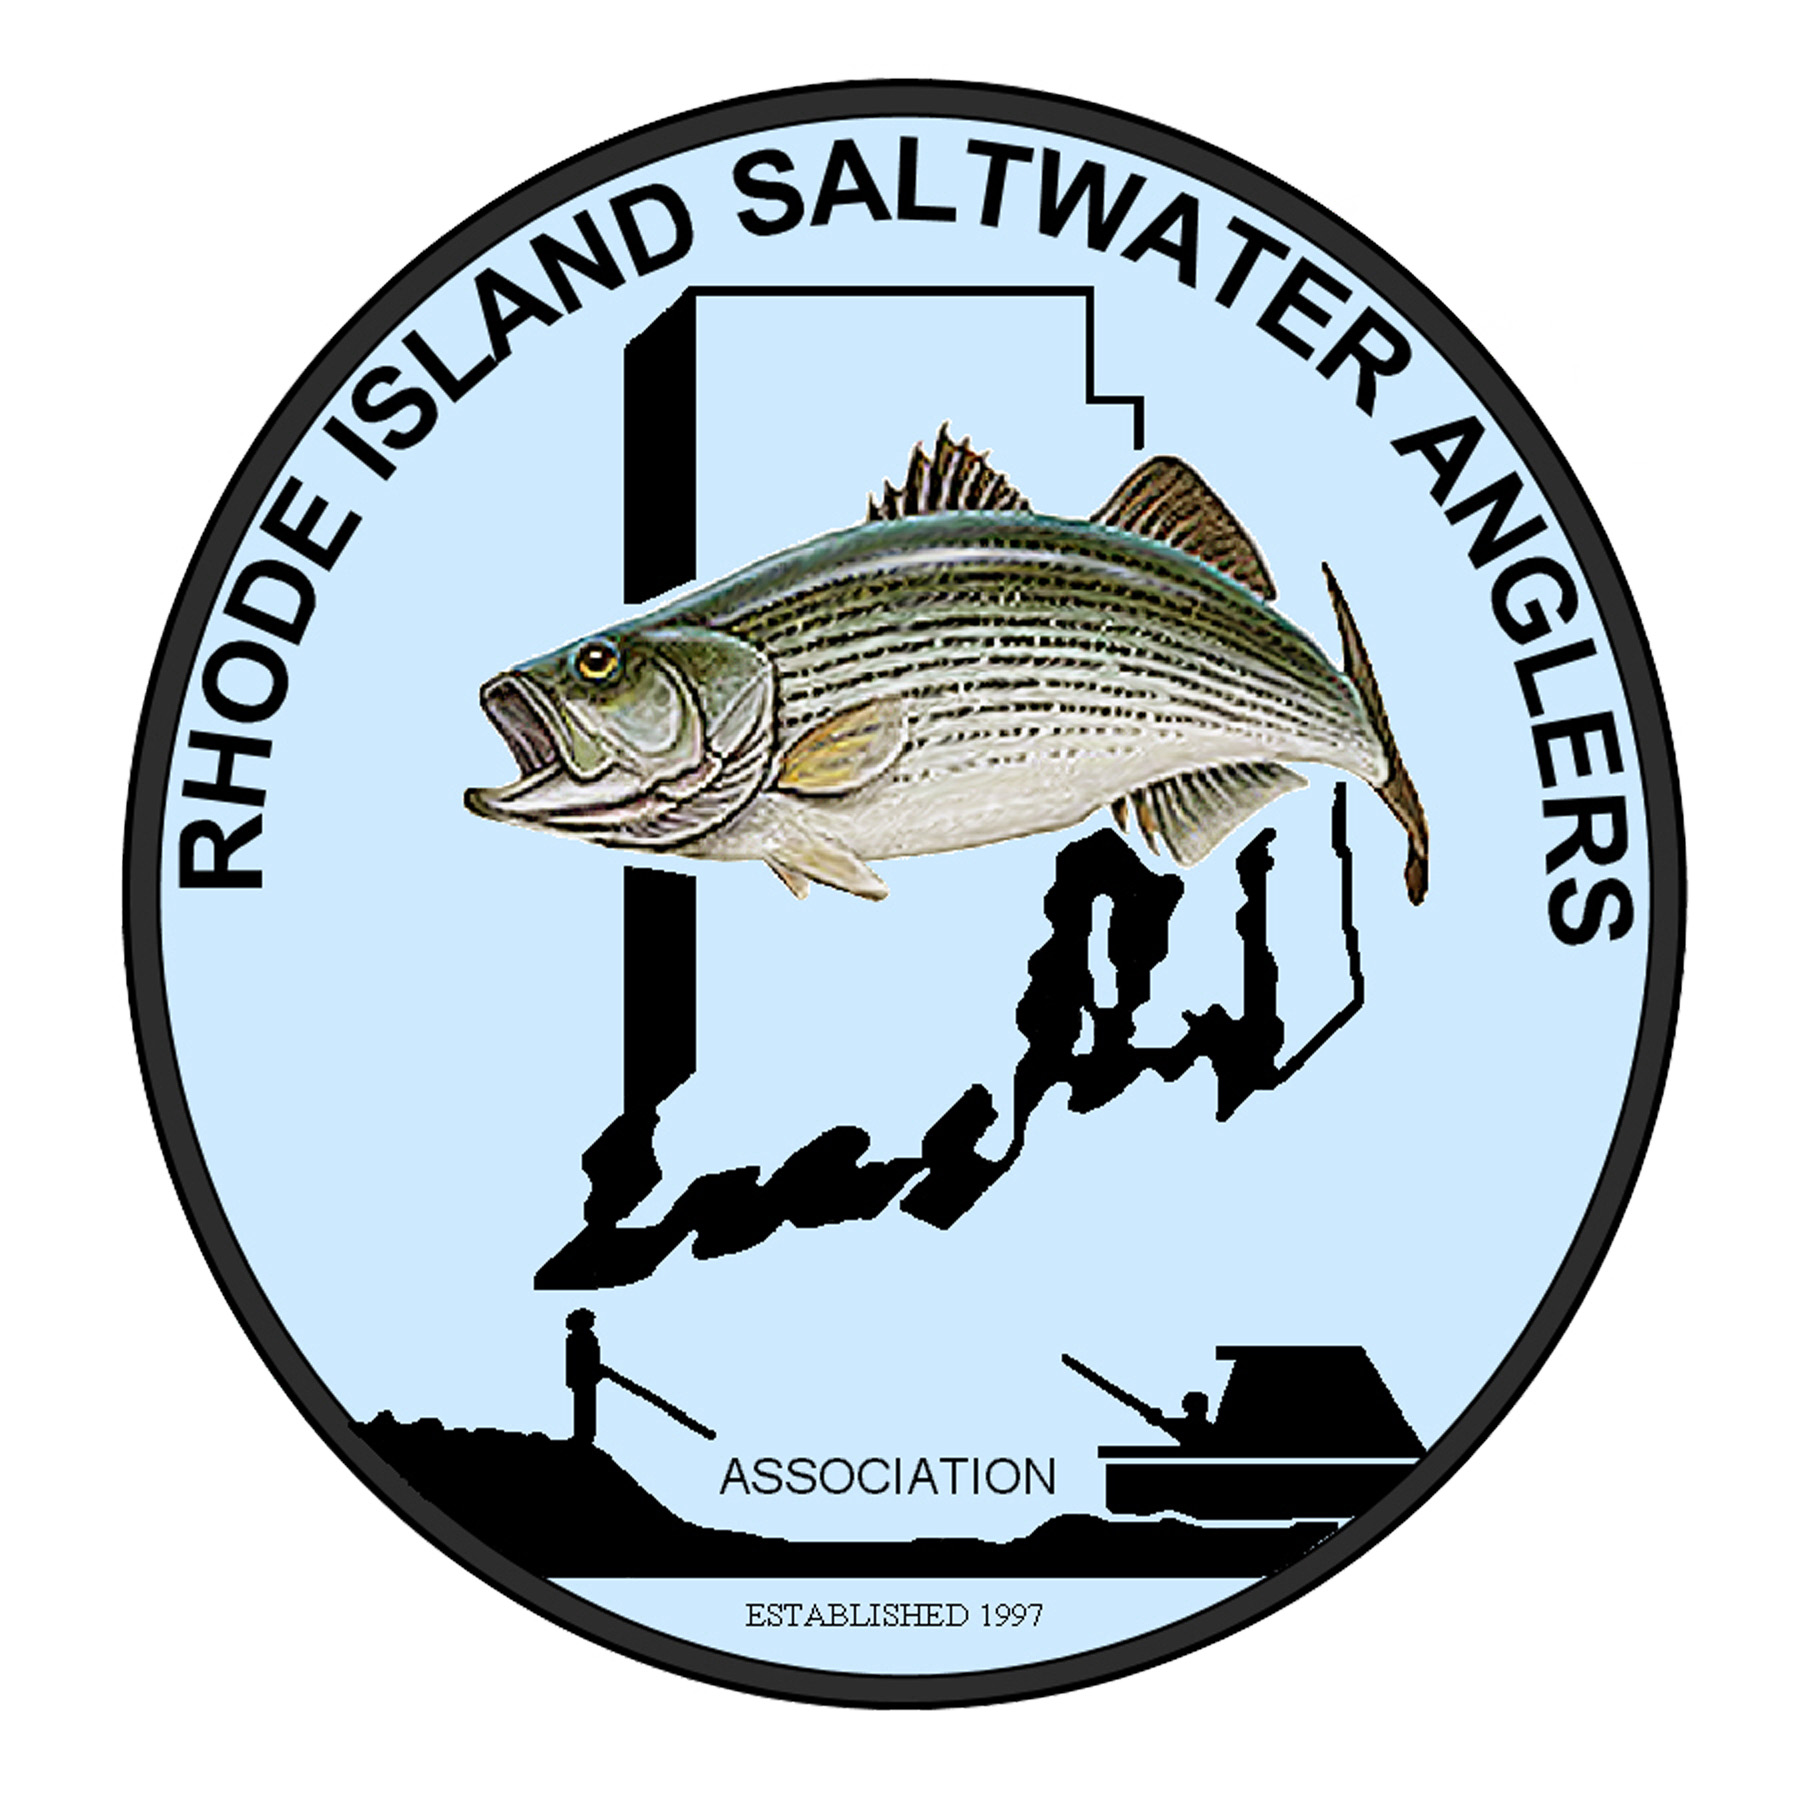 The Rhode Island Saltwater Anglers Association was recognized in 2018 with Save The Bay's Environmental Achievement Award.